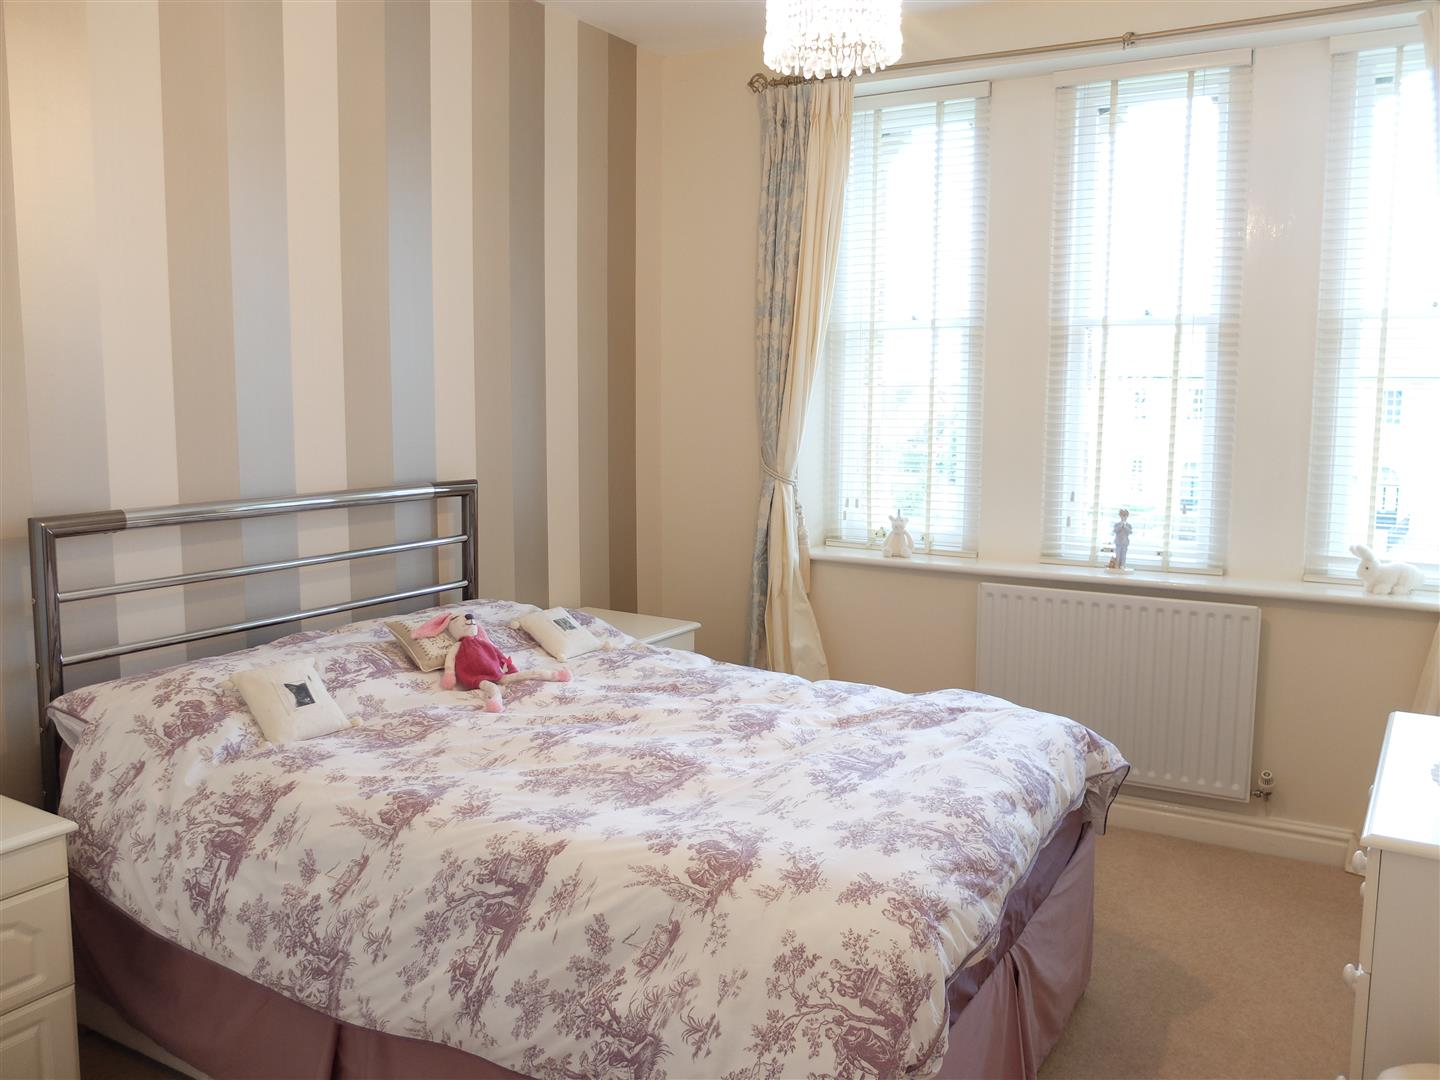 19 Cherry Lane Carlisle 3 Bedrooms Flat For Sale 167,500